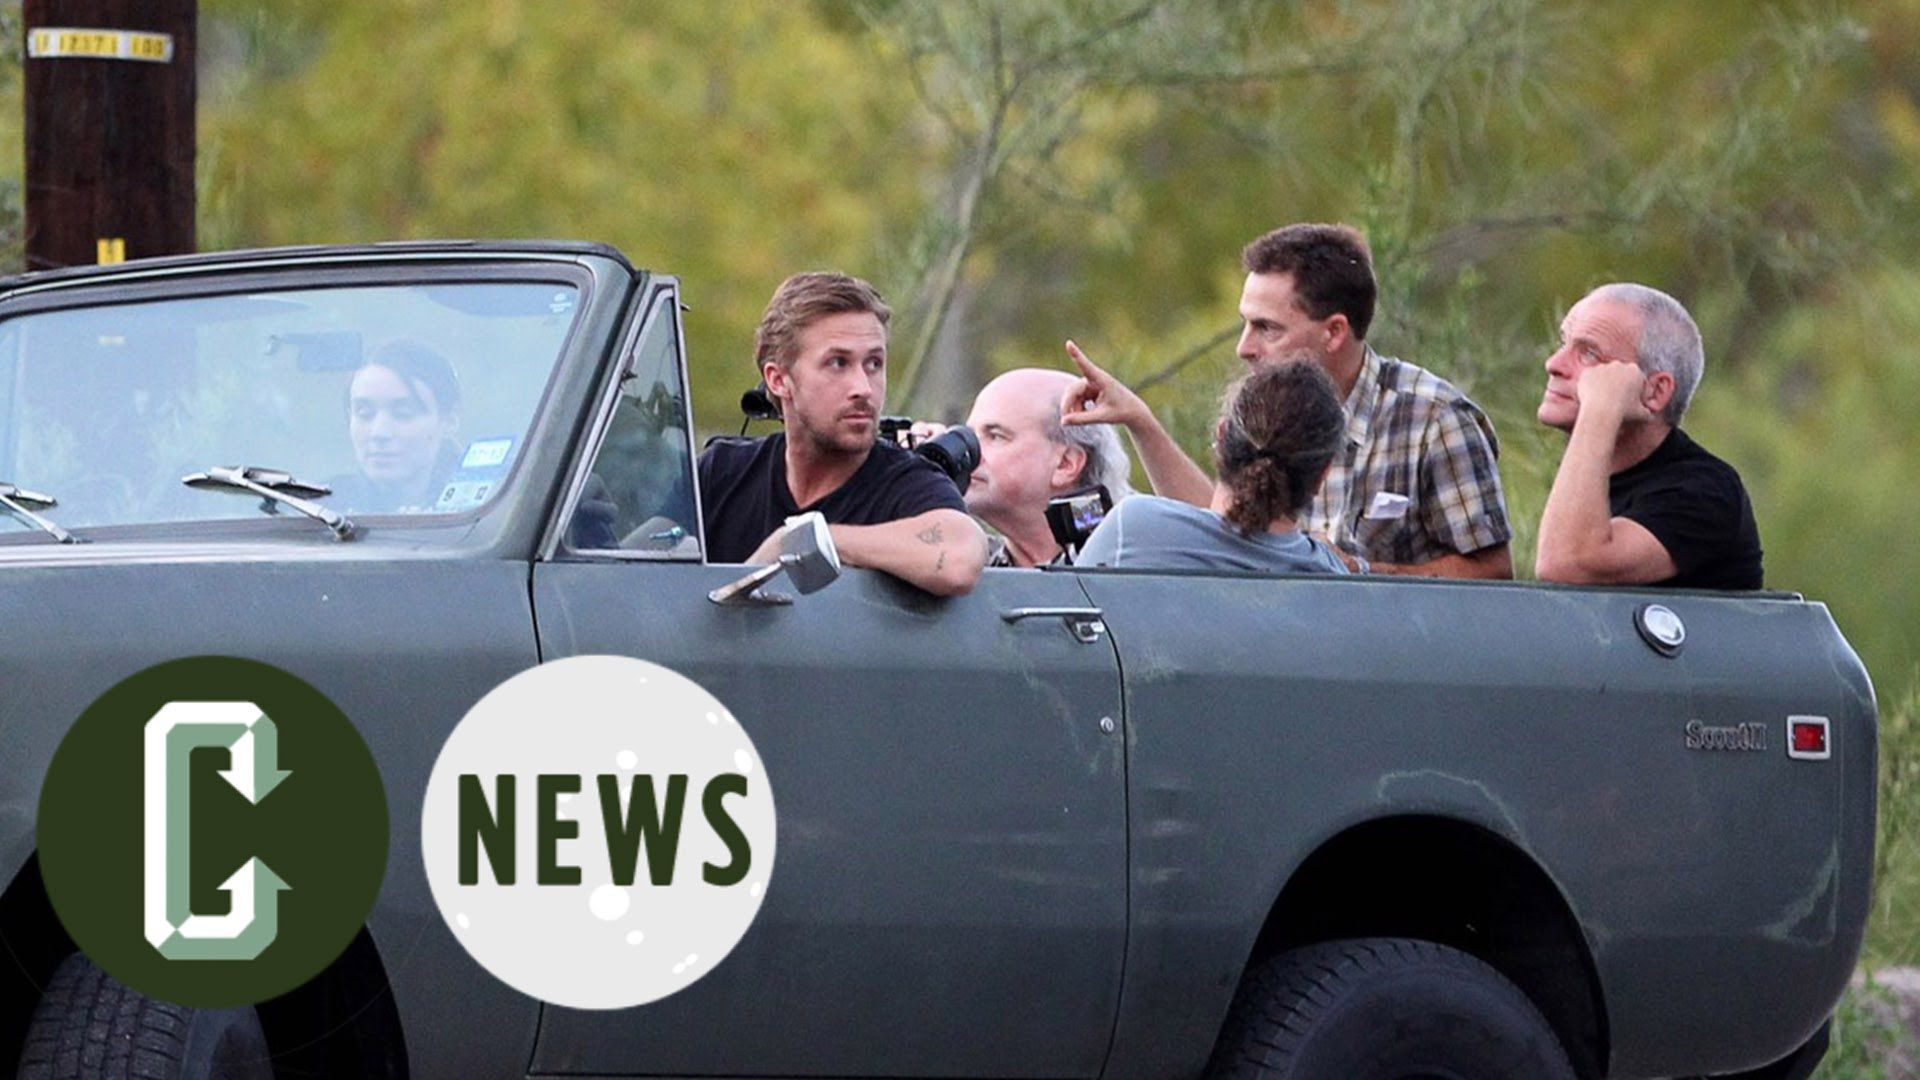 Ashley Mova returns with an all new Collider News breaking down the report about Weightless, Terrence Malick's new movie that just announced its full cast li...